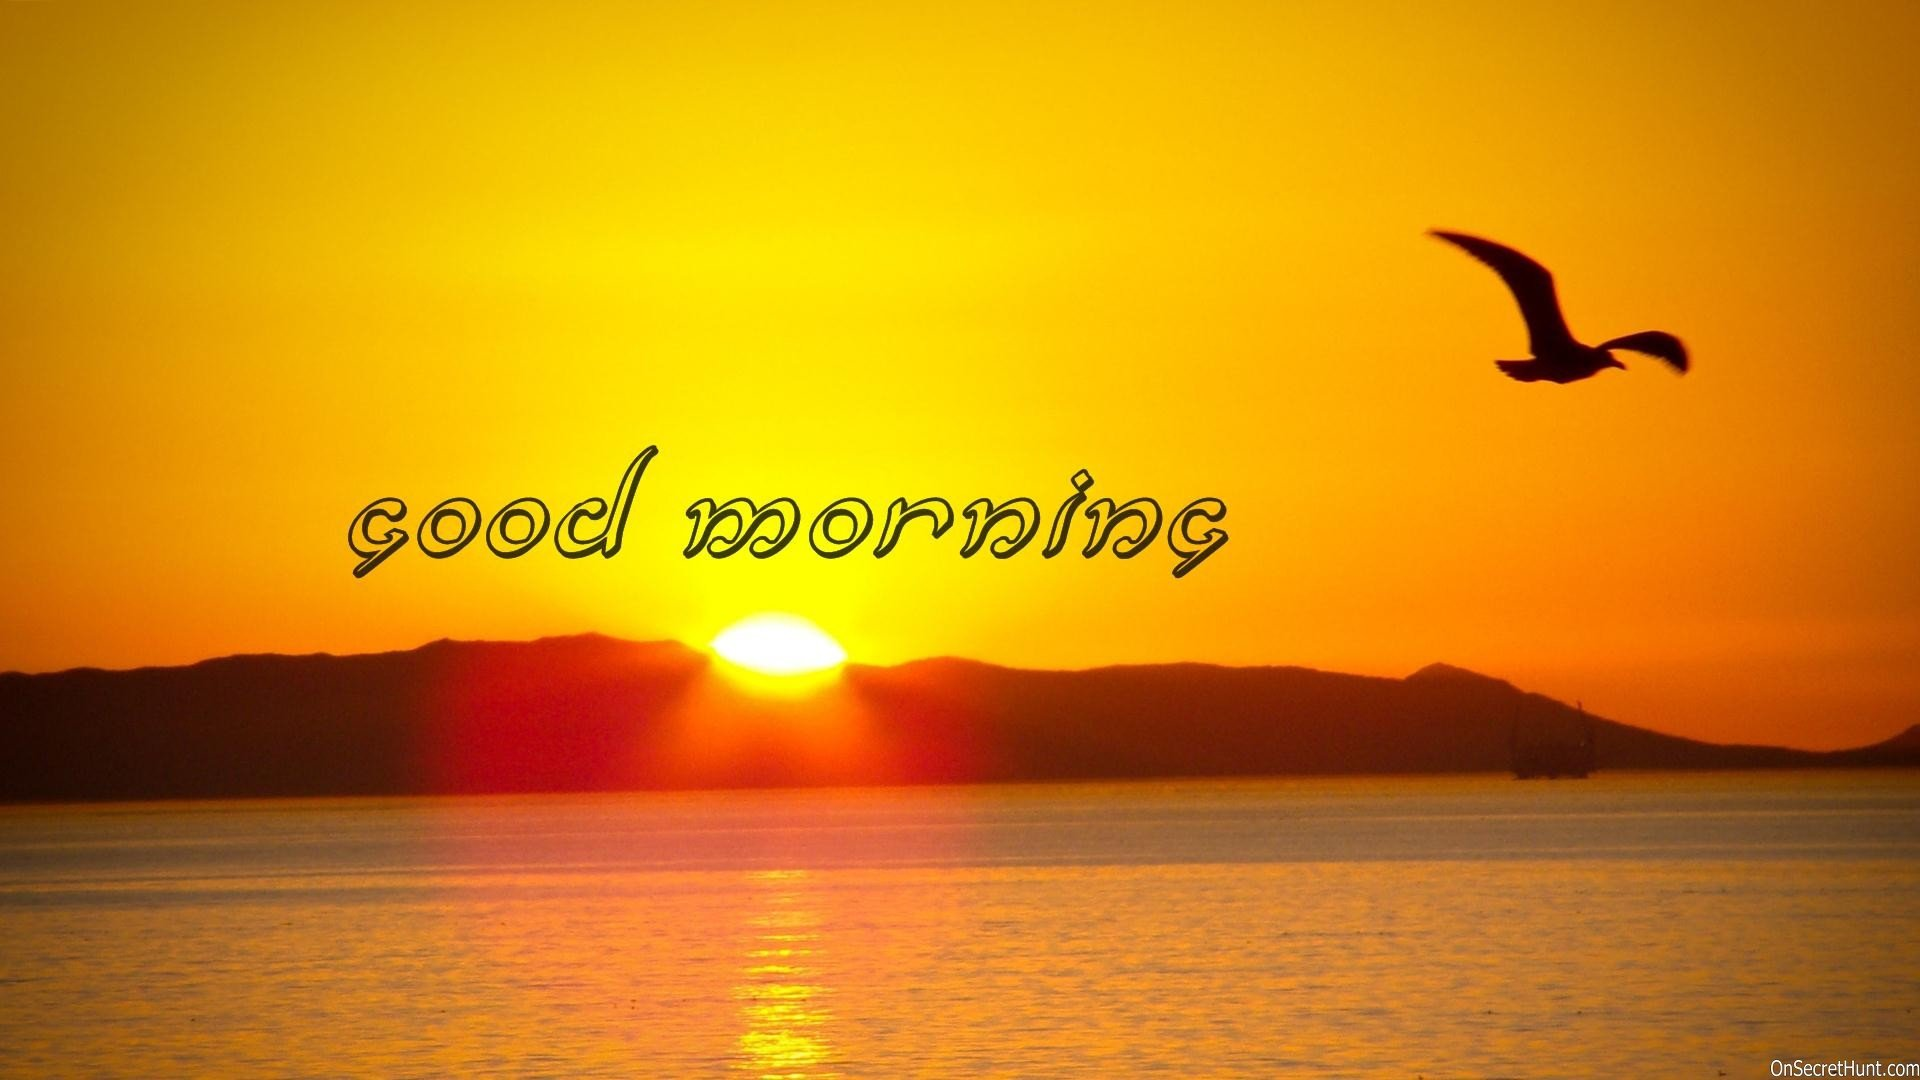 Lovesove Good Morning Wallpaper : Good morning greetings motivational mood wallpaper ...